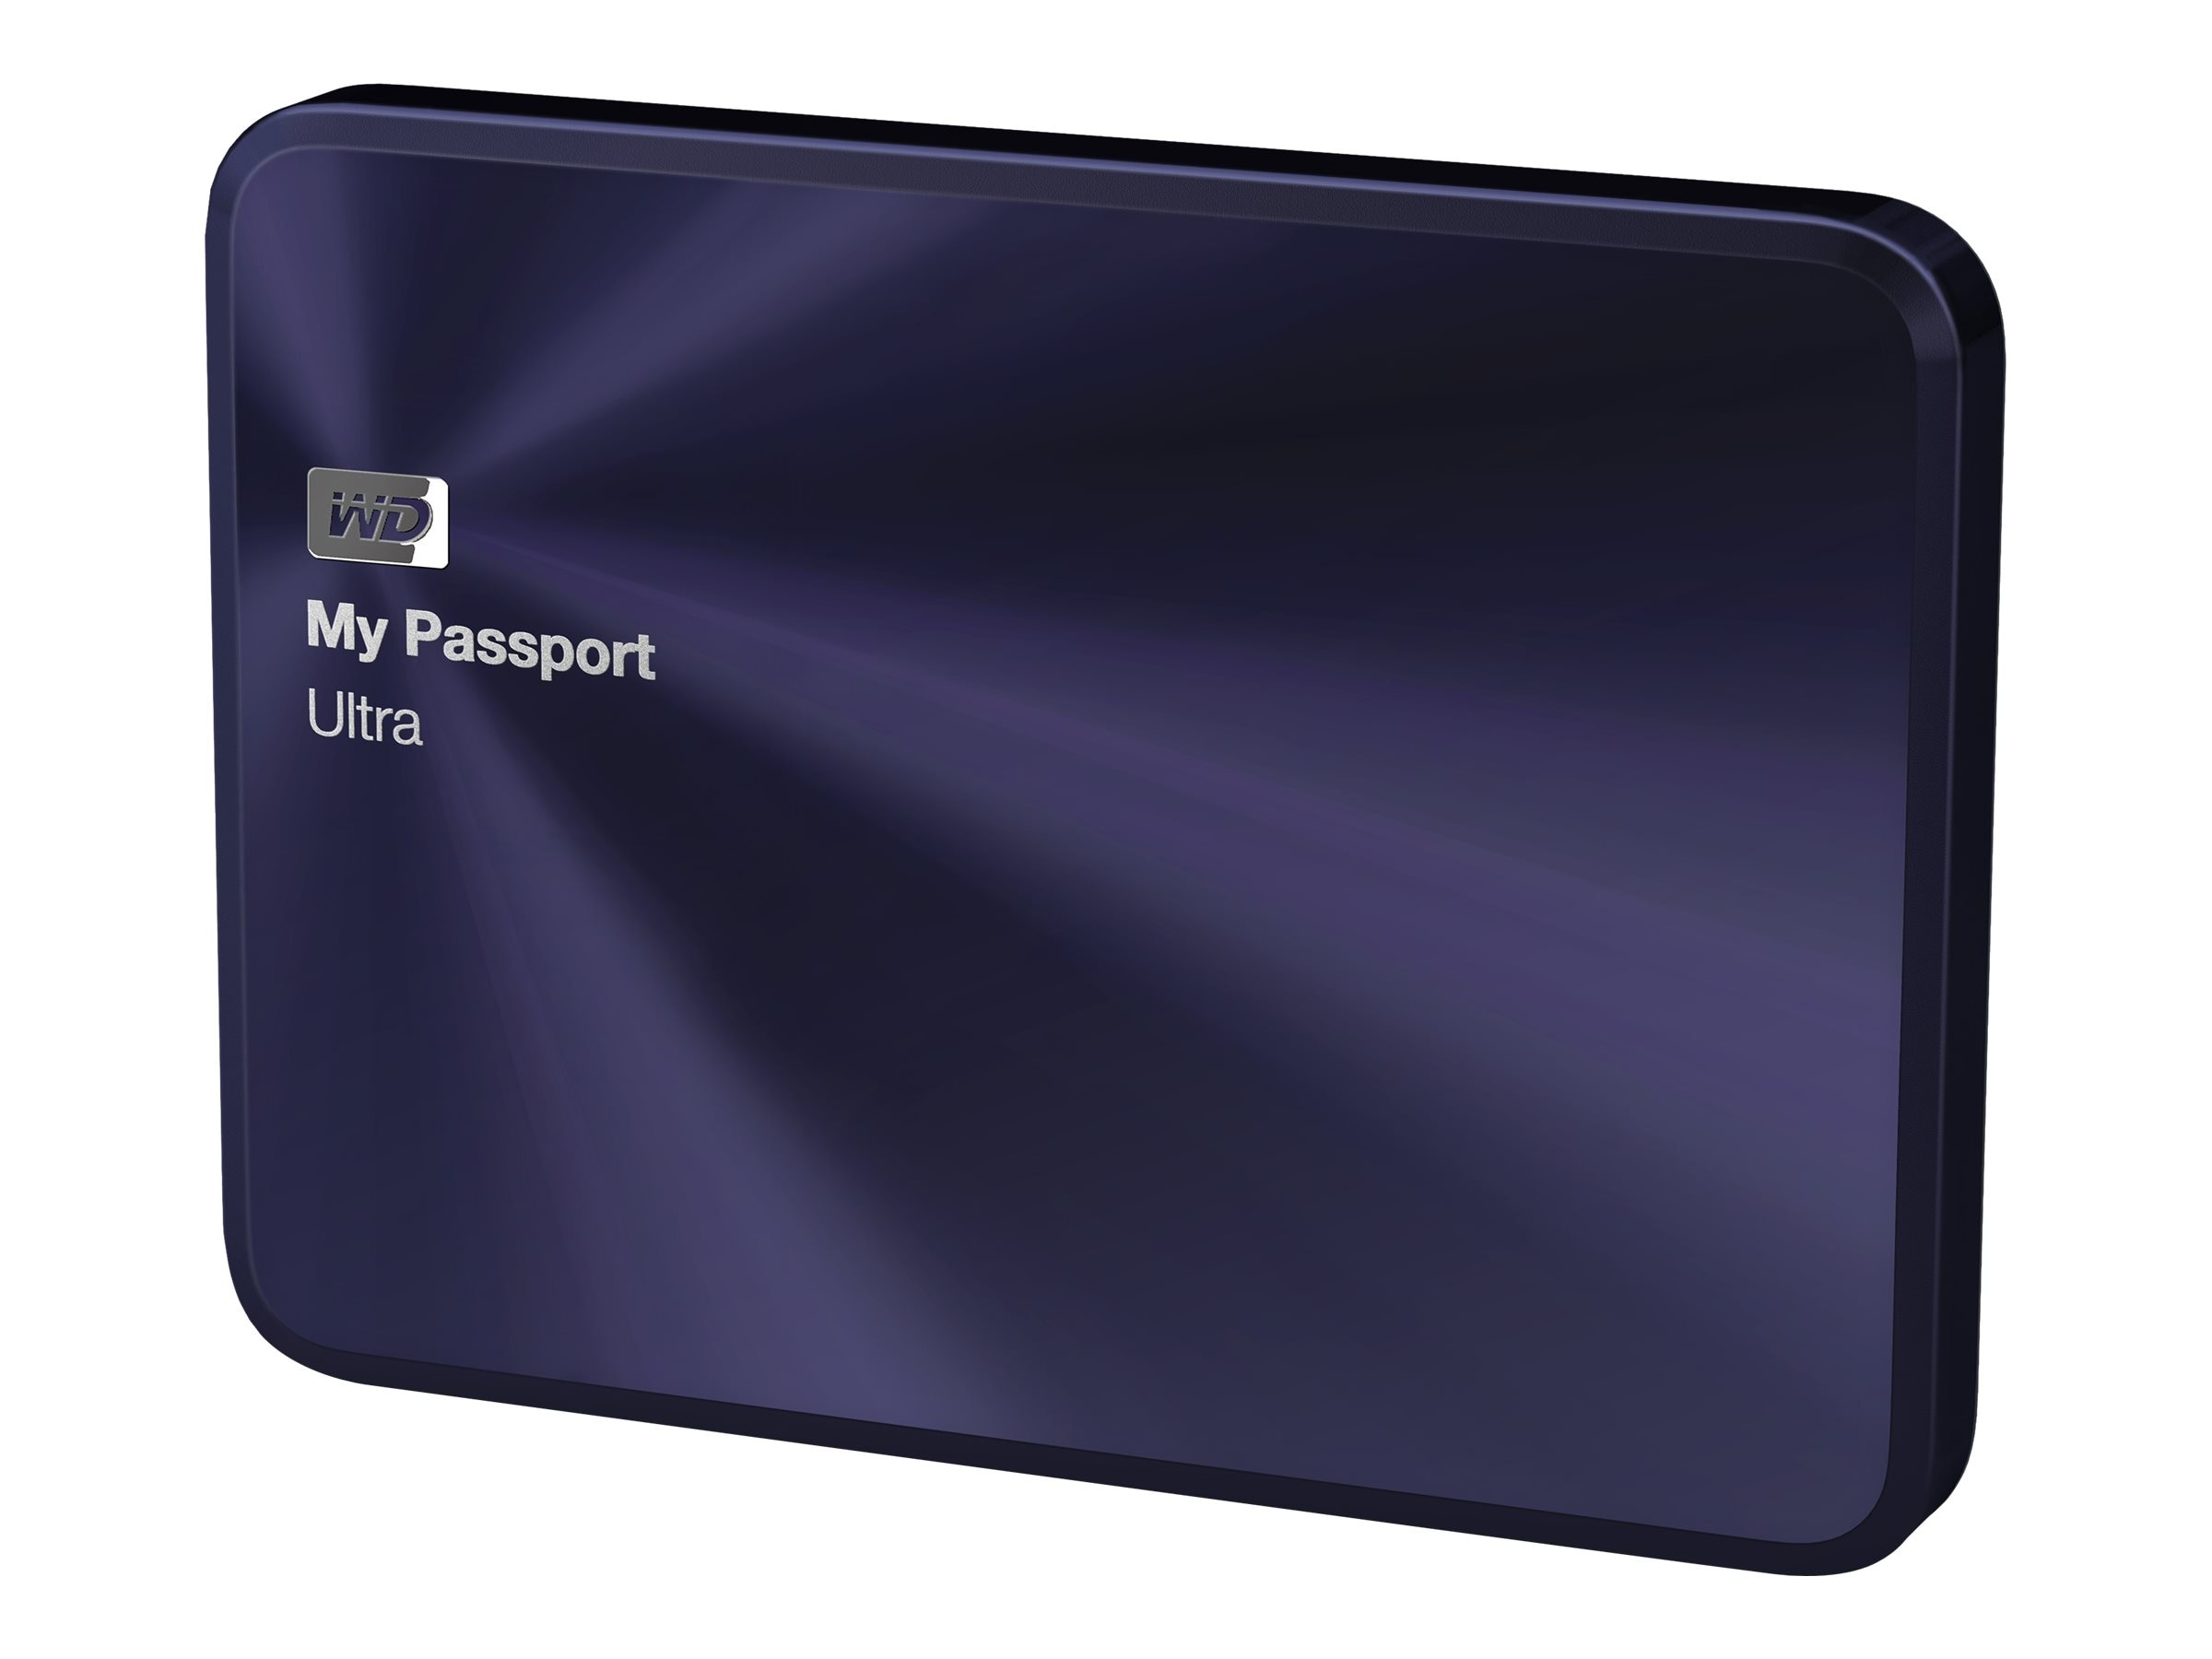 WD 4TB My Passport Ultra Metal Edition USB 3.0 Portable Hard Drive - Blue Black, WDBEZW0040BBA-NESN